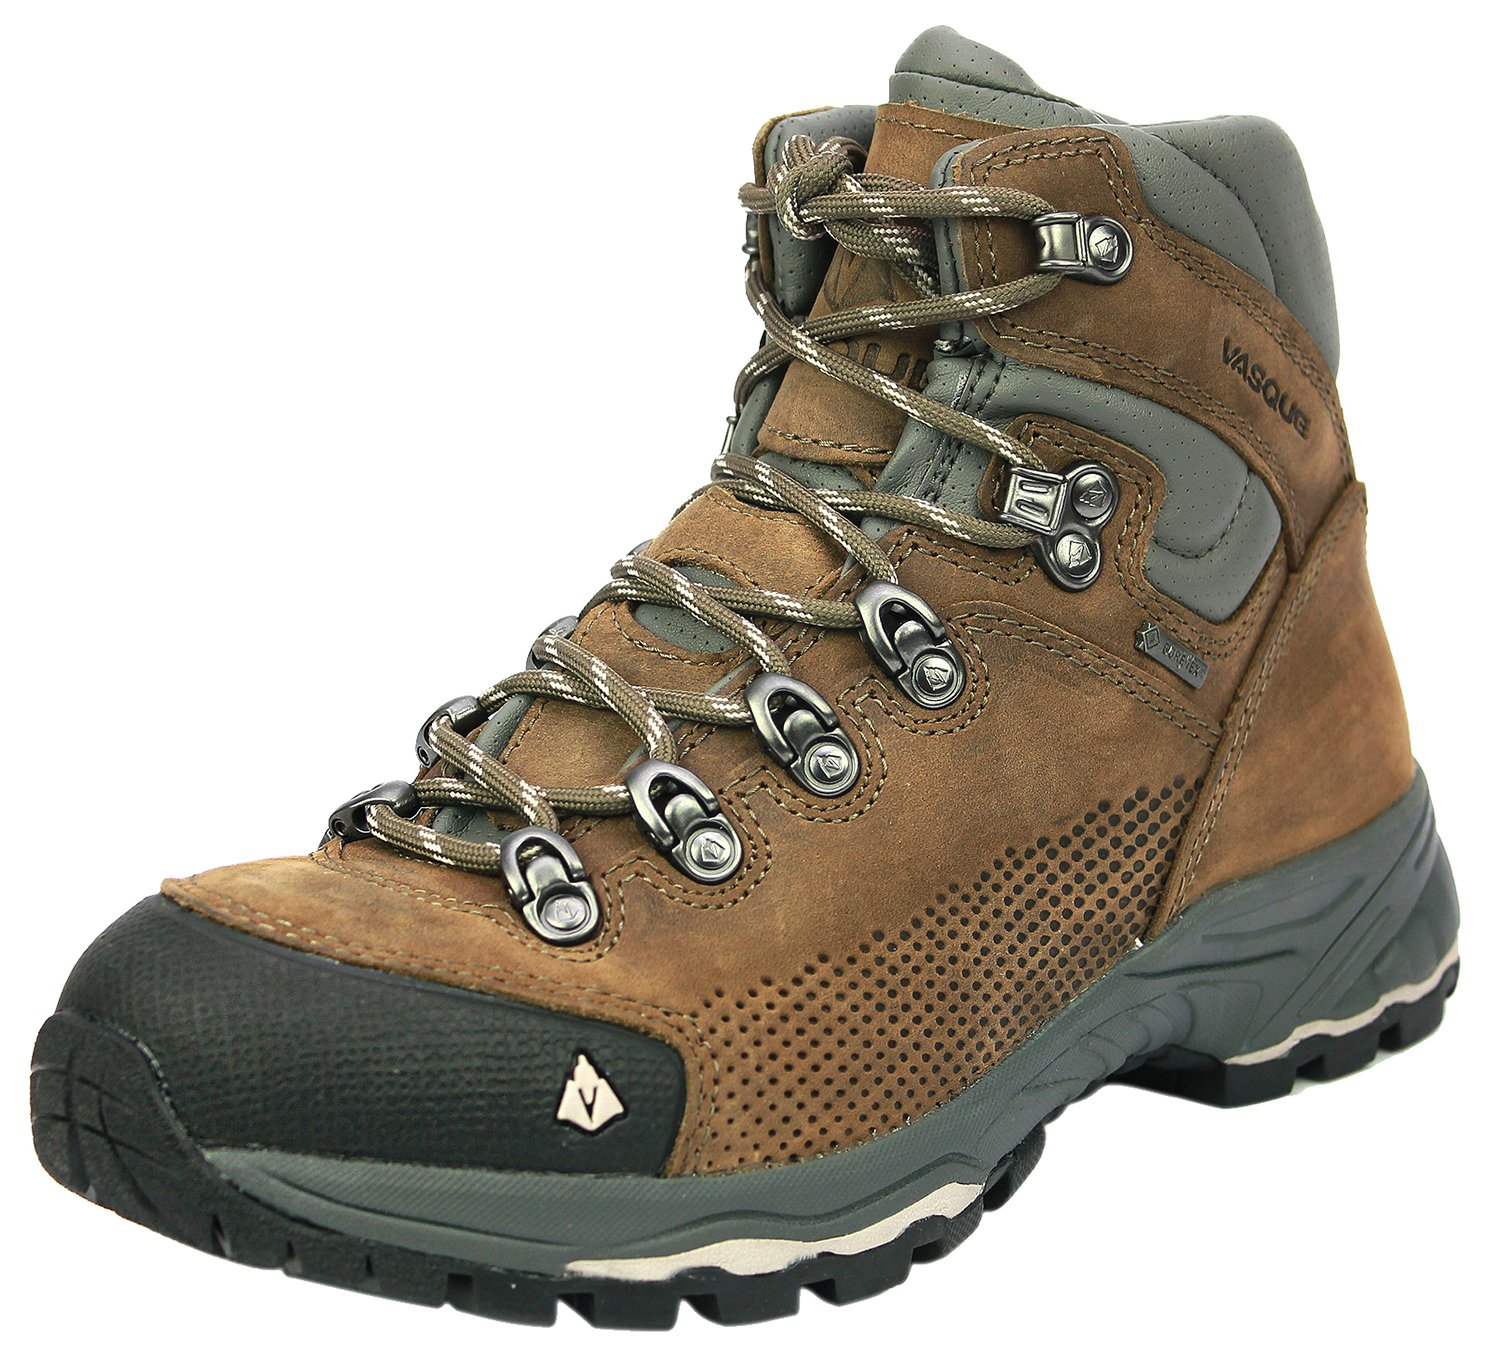 Vasque Women's St. Elias Gore-Tex Hiking Boot B00APWMURO 10 W US|Bungee/Silver